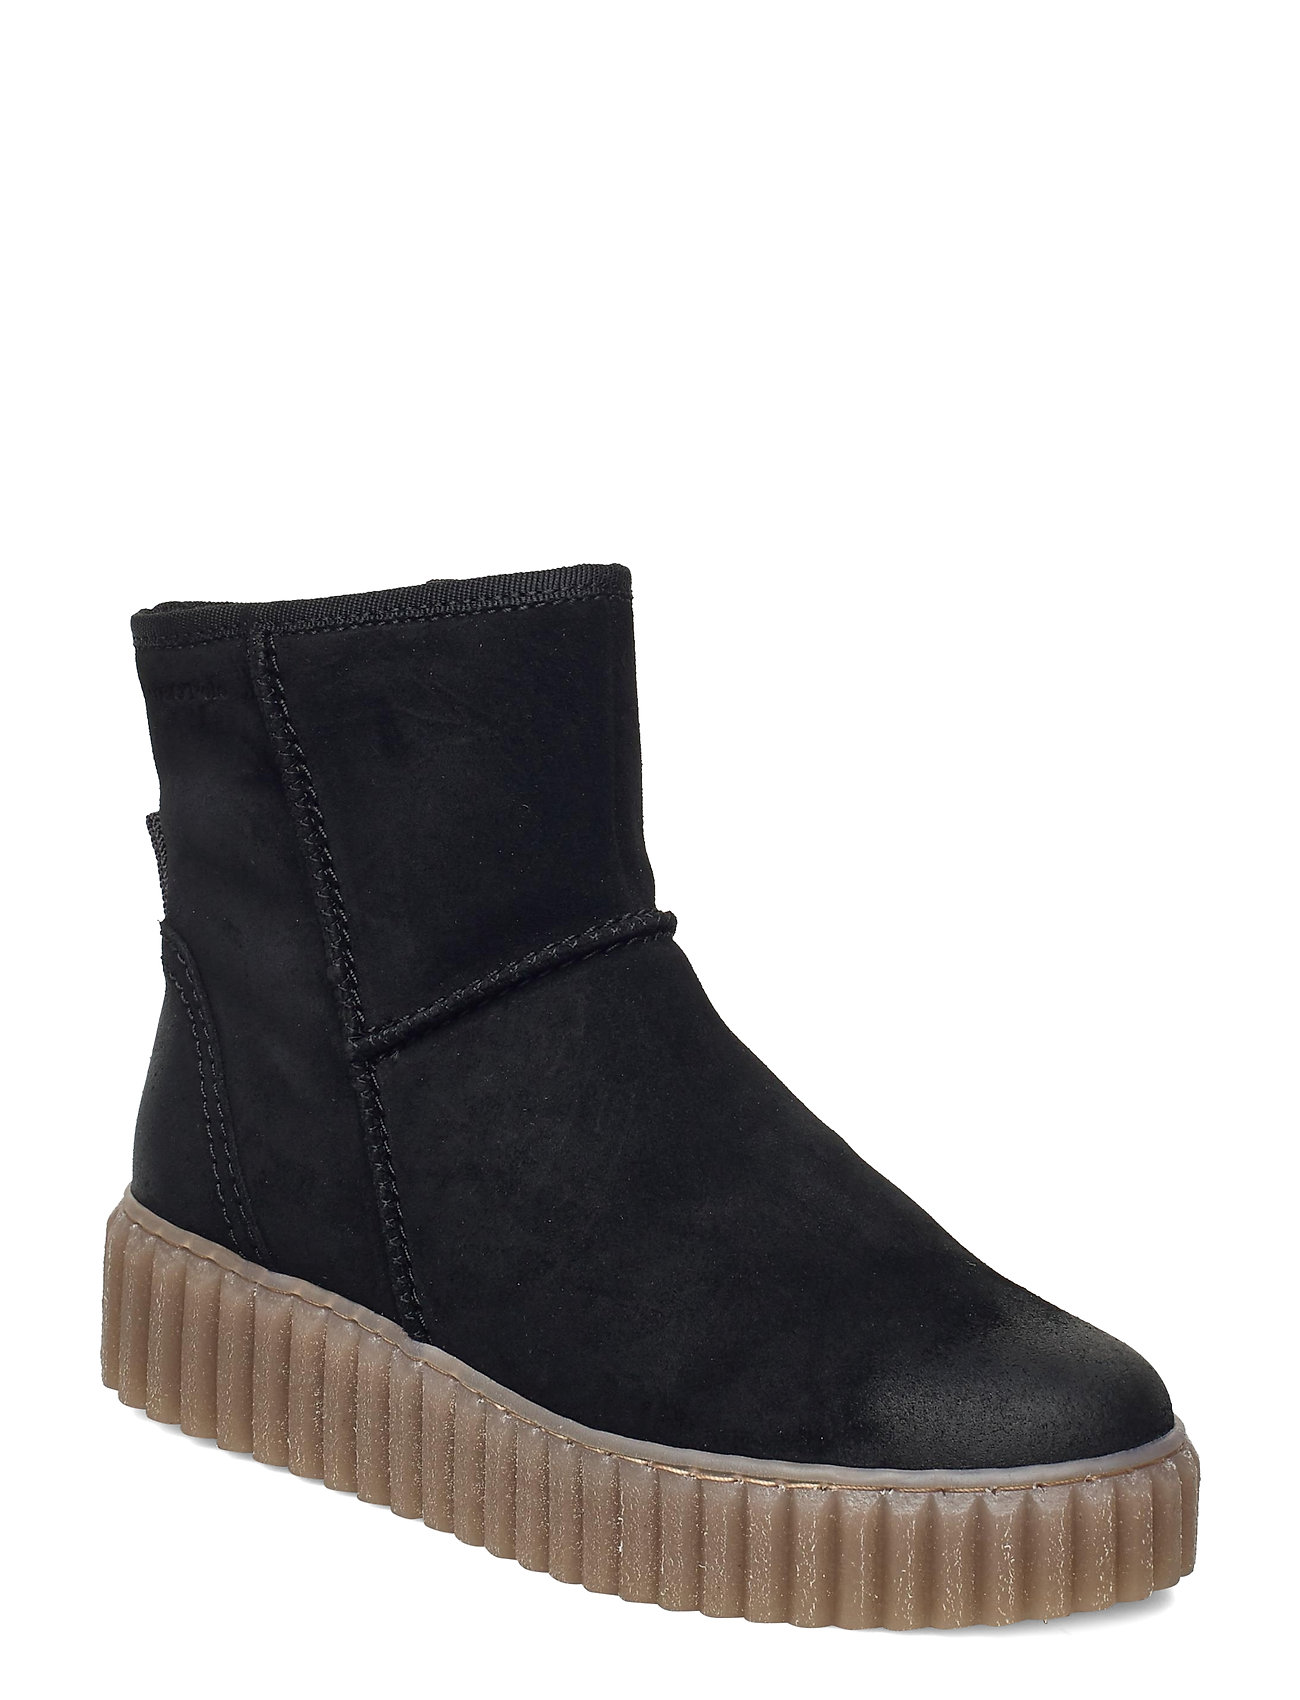 Image of Bianca 2 Shoes Boots Ankle Boots Ankle Boot - Flat Sort Marc O'Polo Footwear (3456993767)